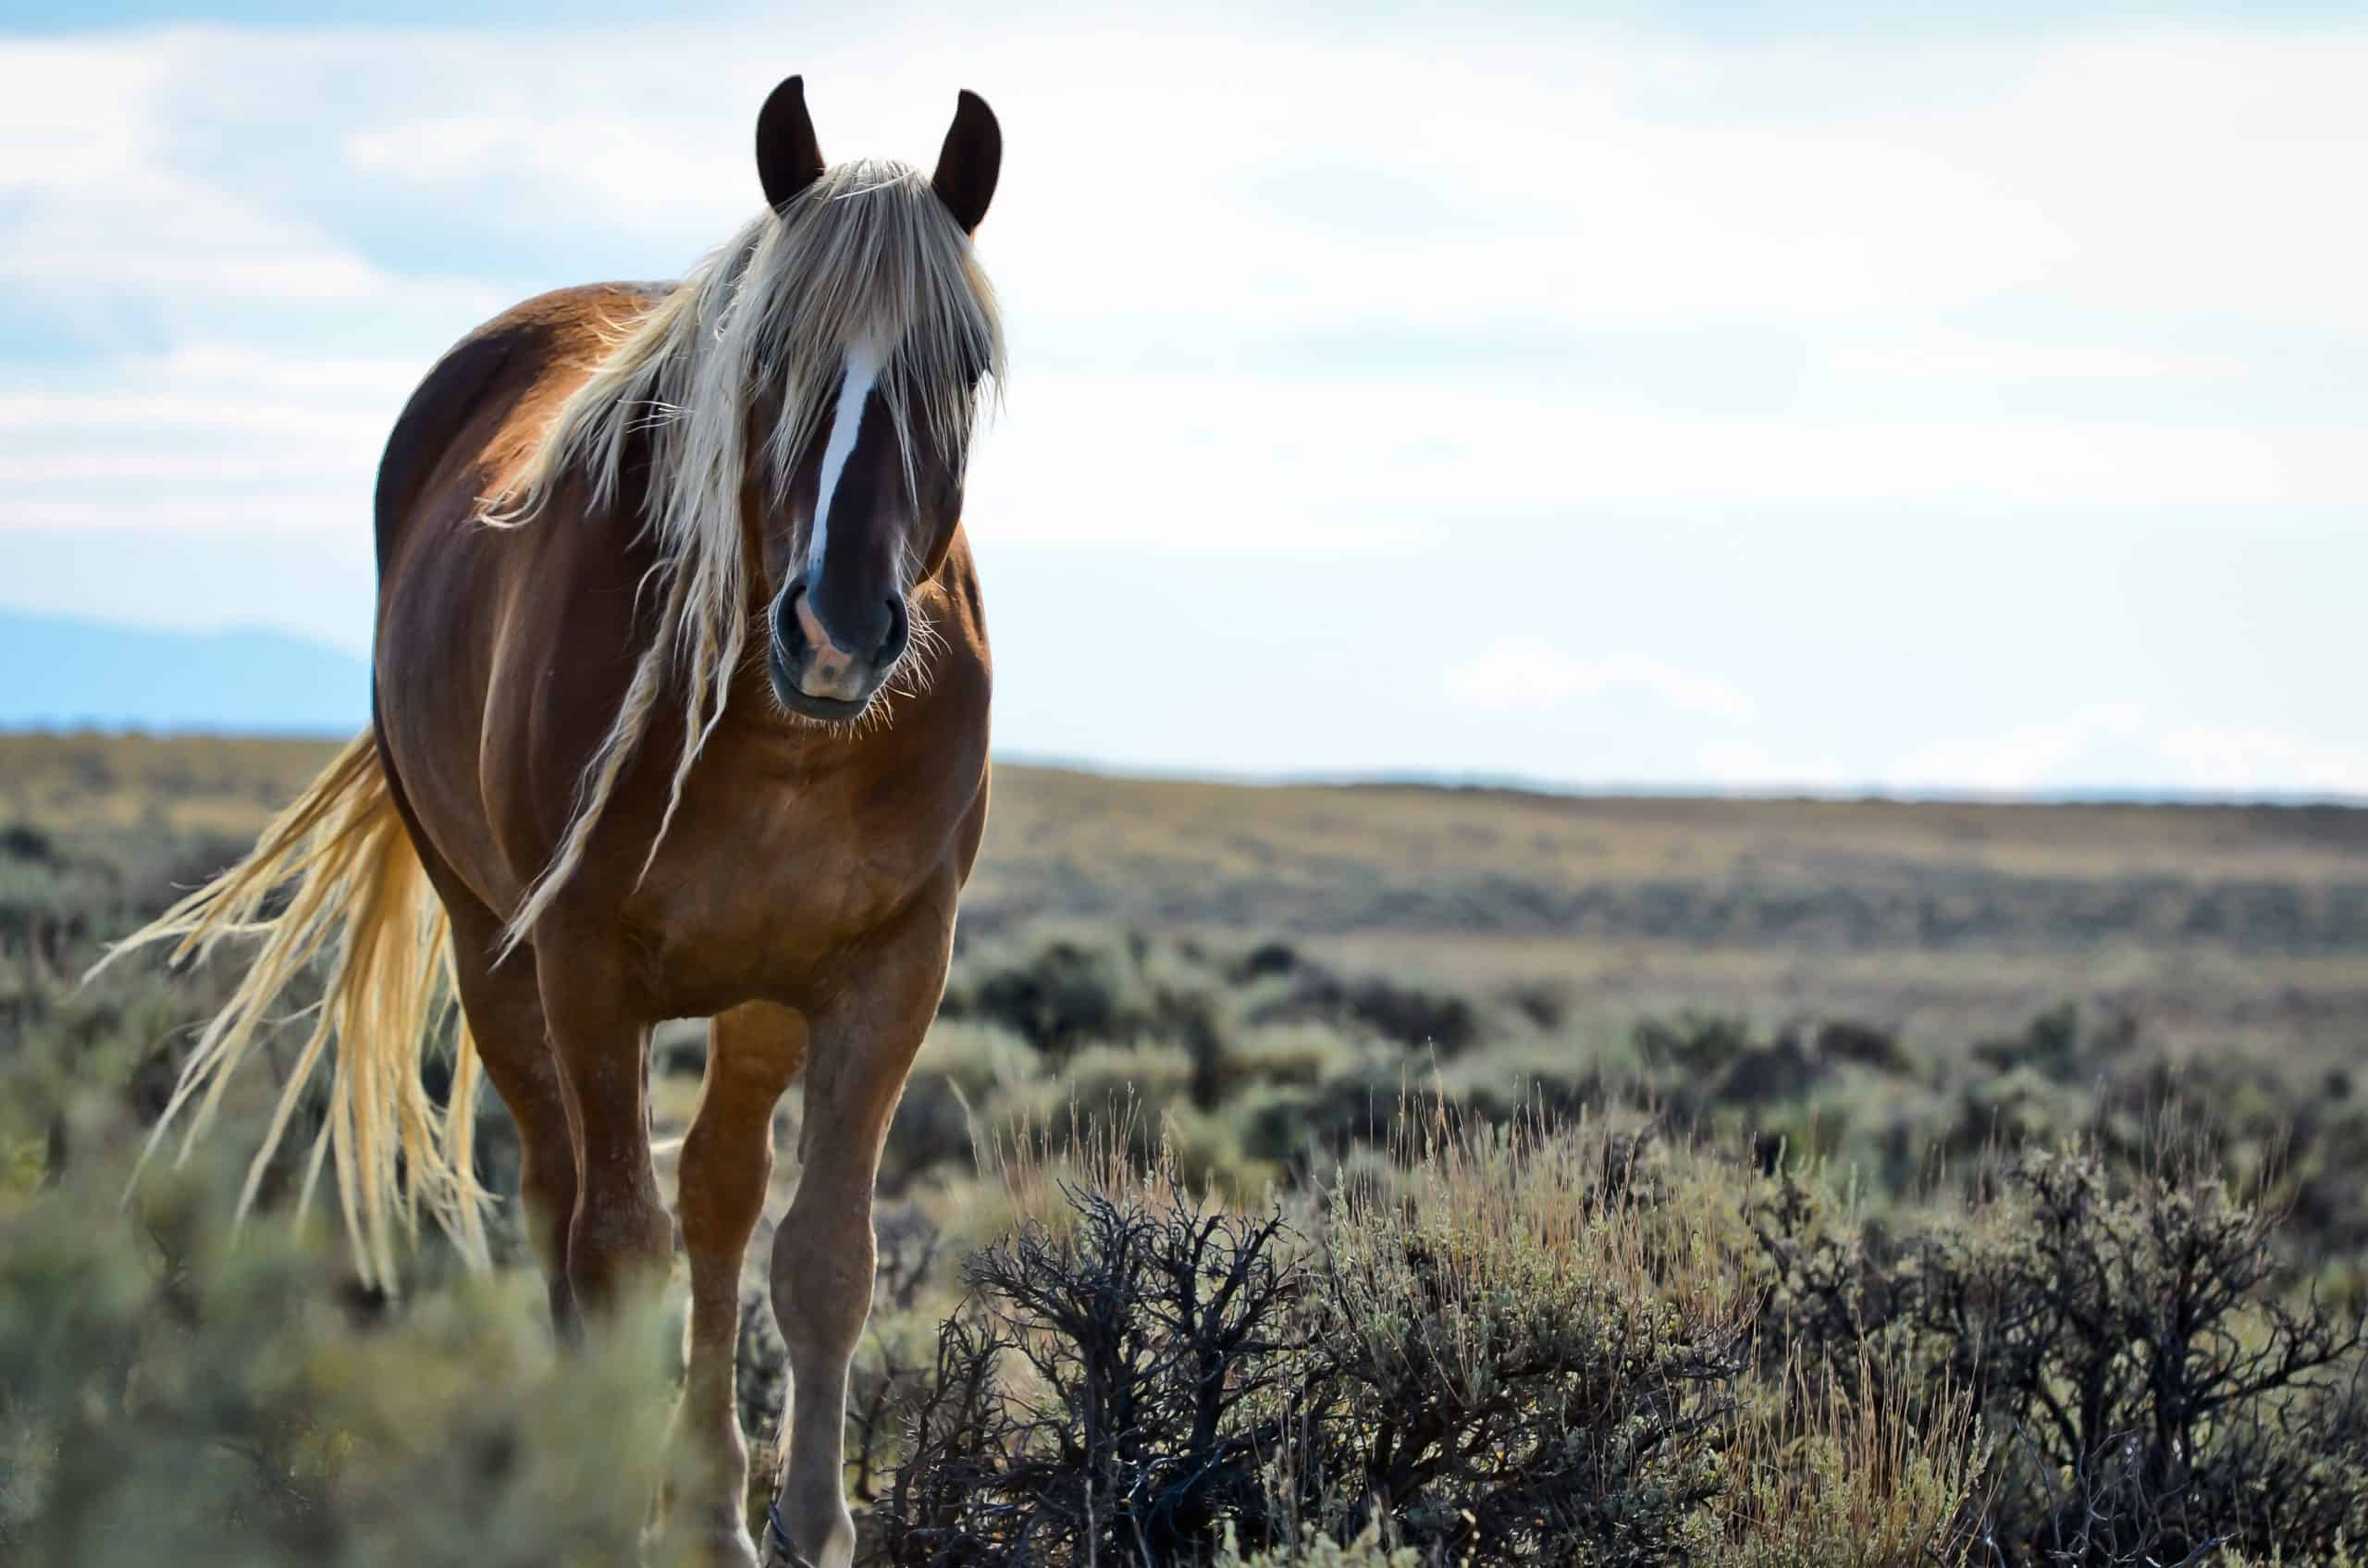 Wild Mustang near Cody, Wyoming.